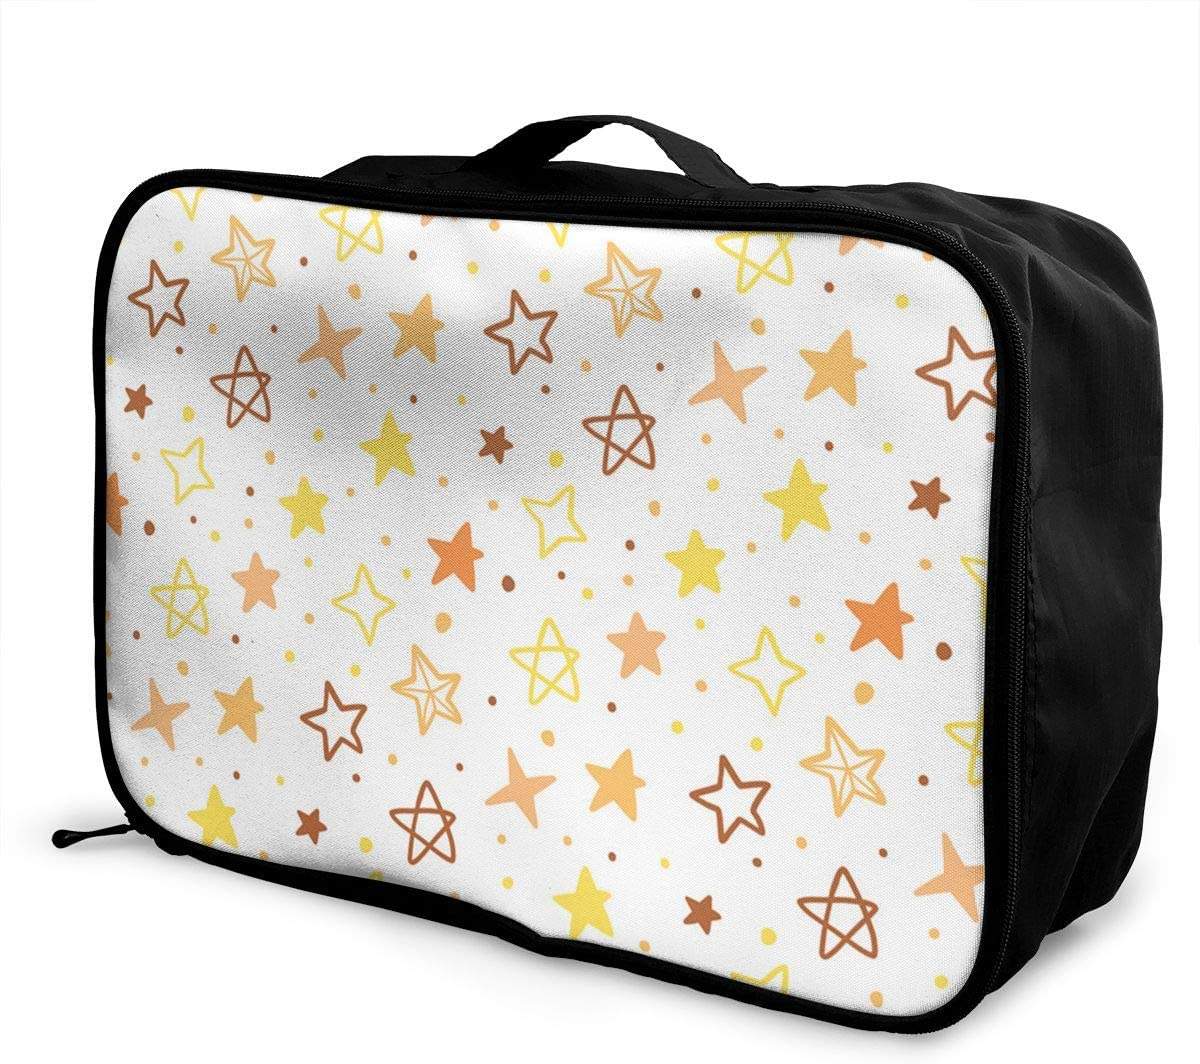 Yellow Stars Travel Carry-on Luggage Weekender Bag Overnight Tote Flight Duffel In Trolley Handle